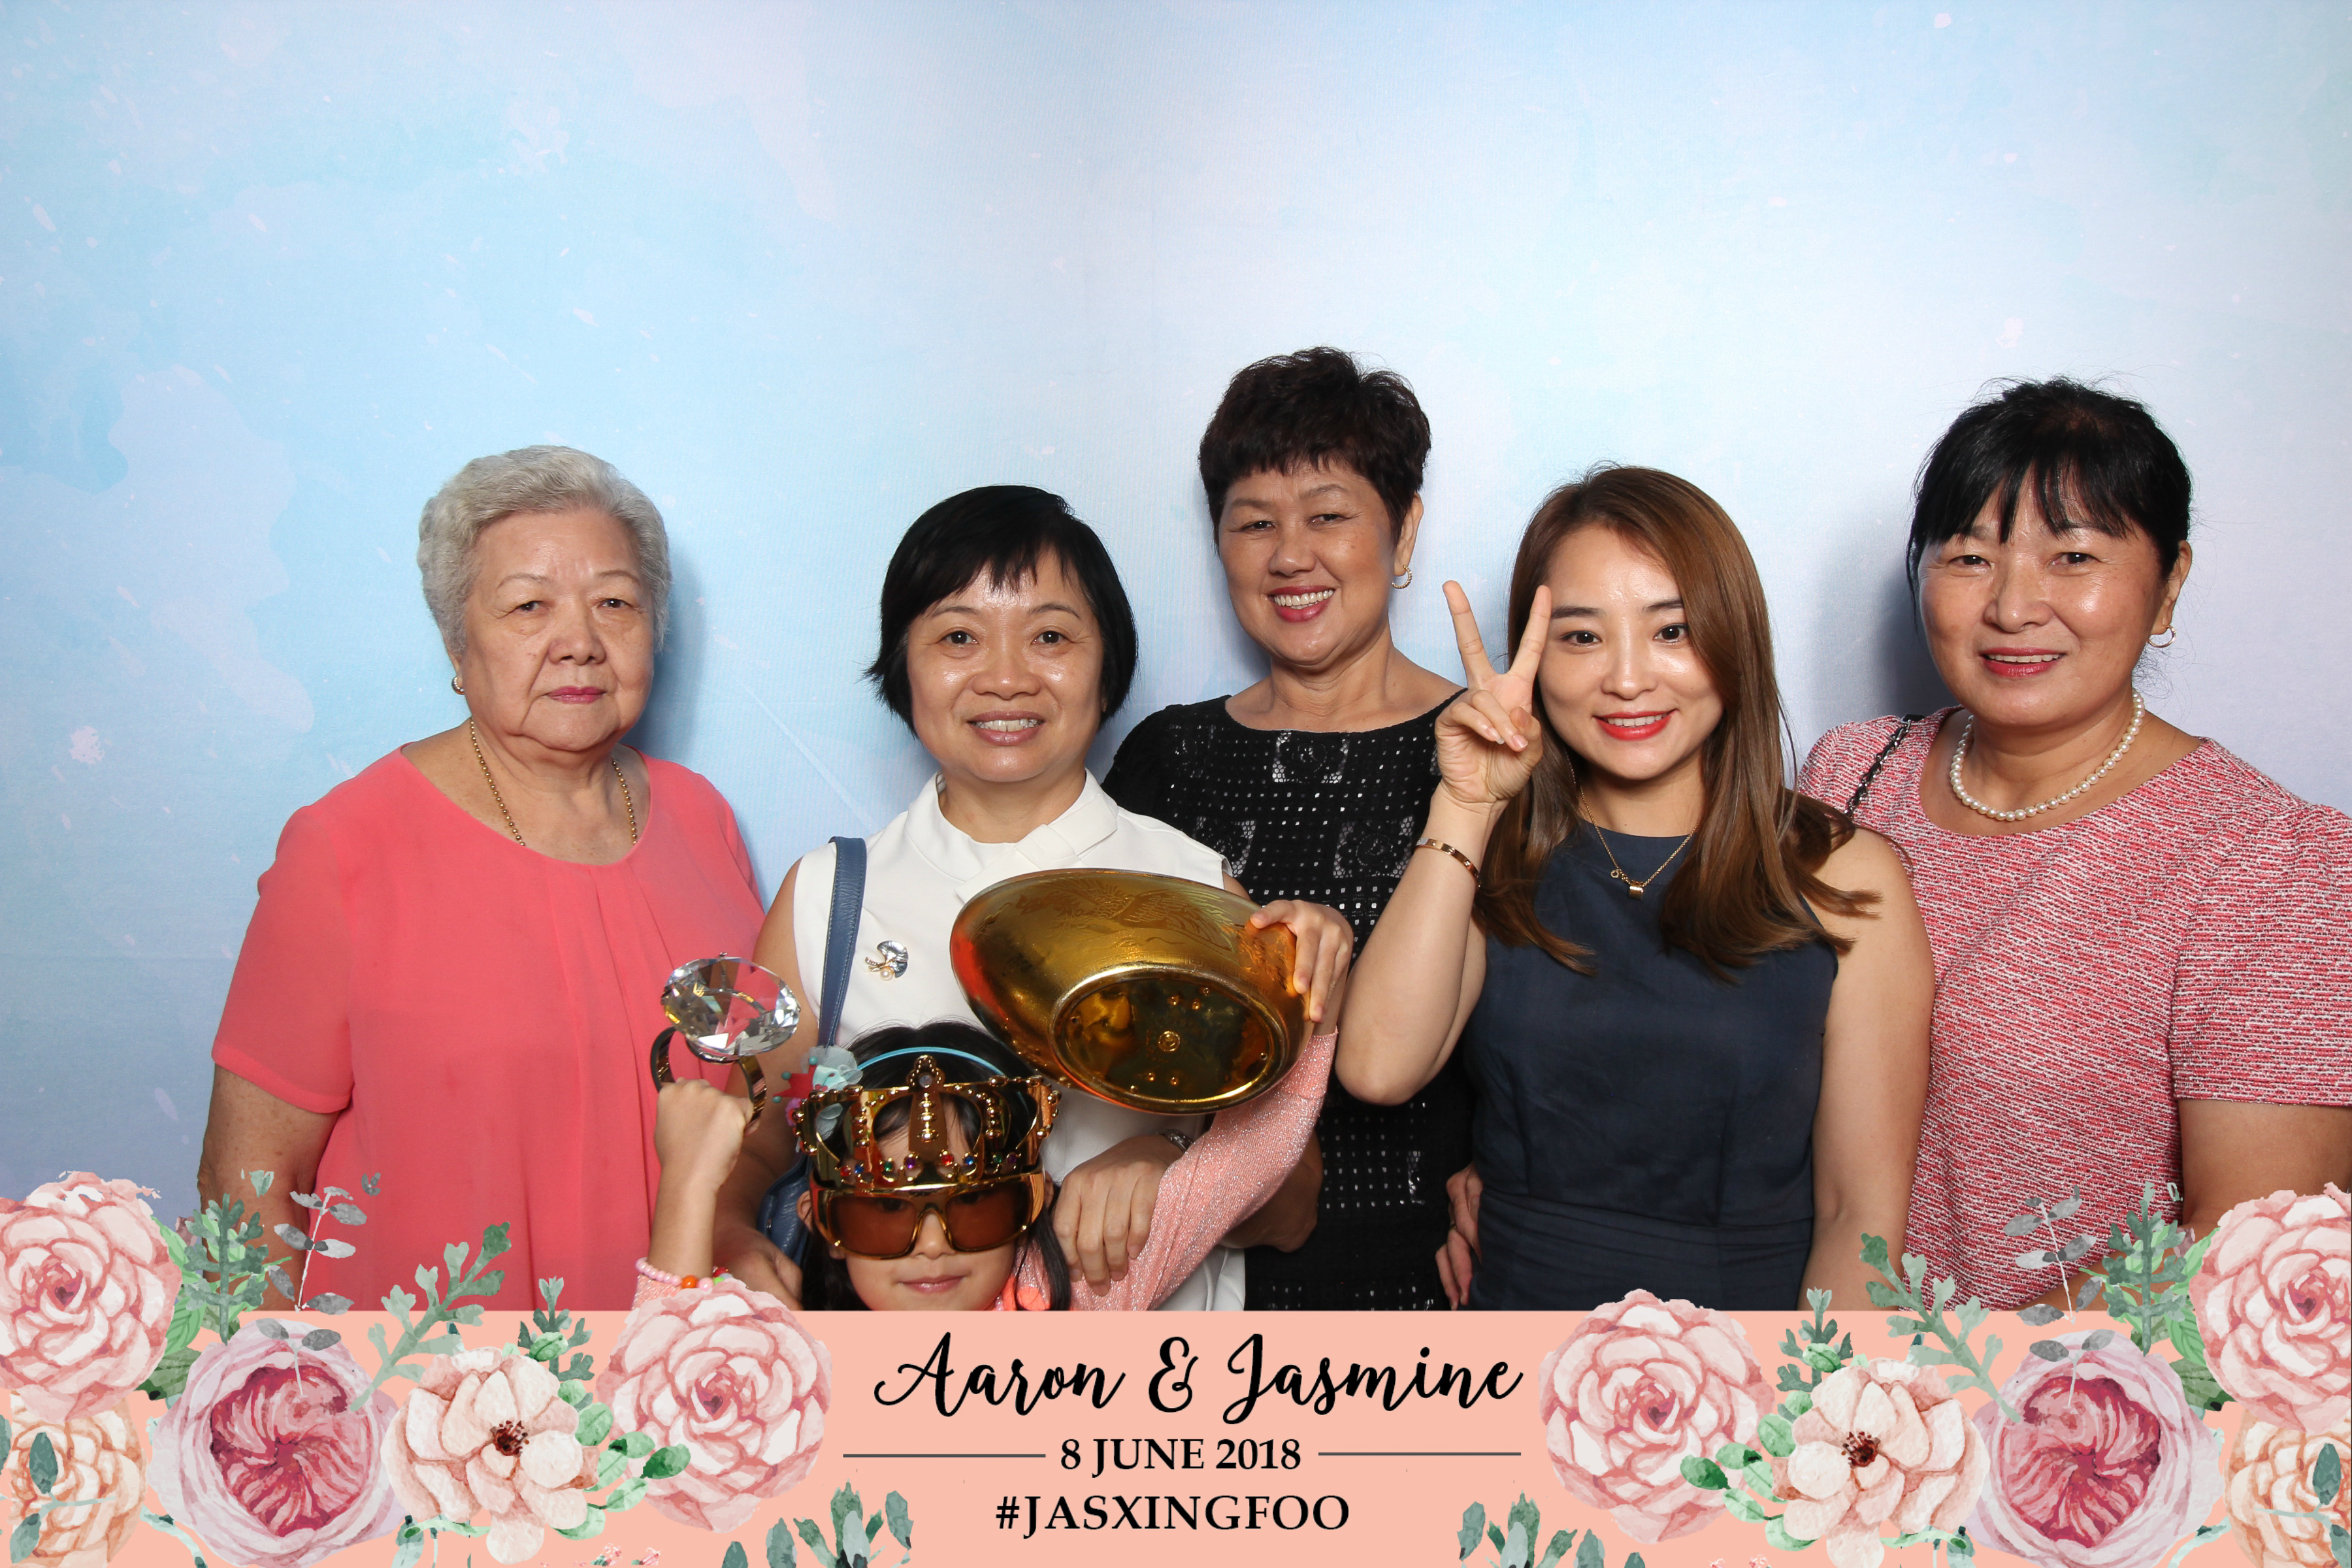 Photobooth 0806-69